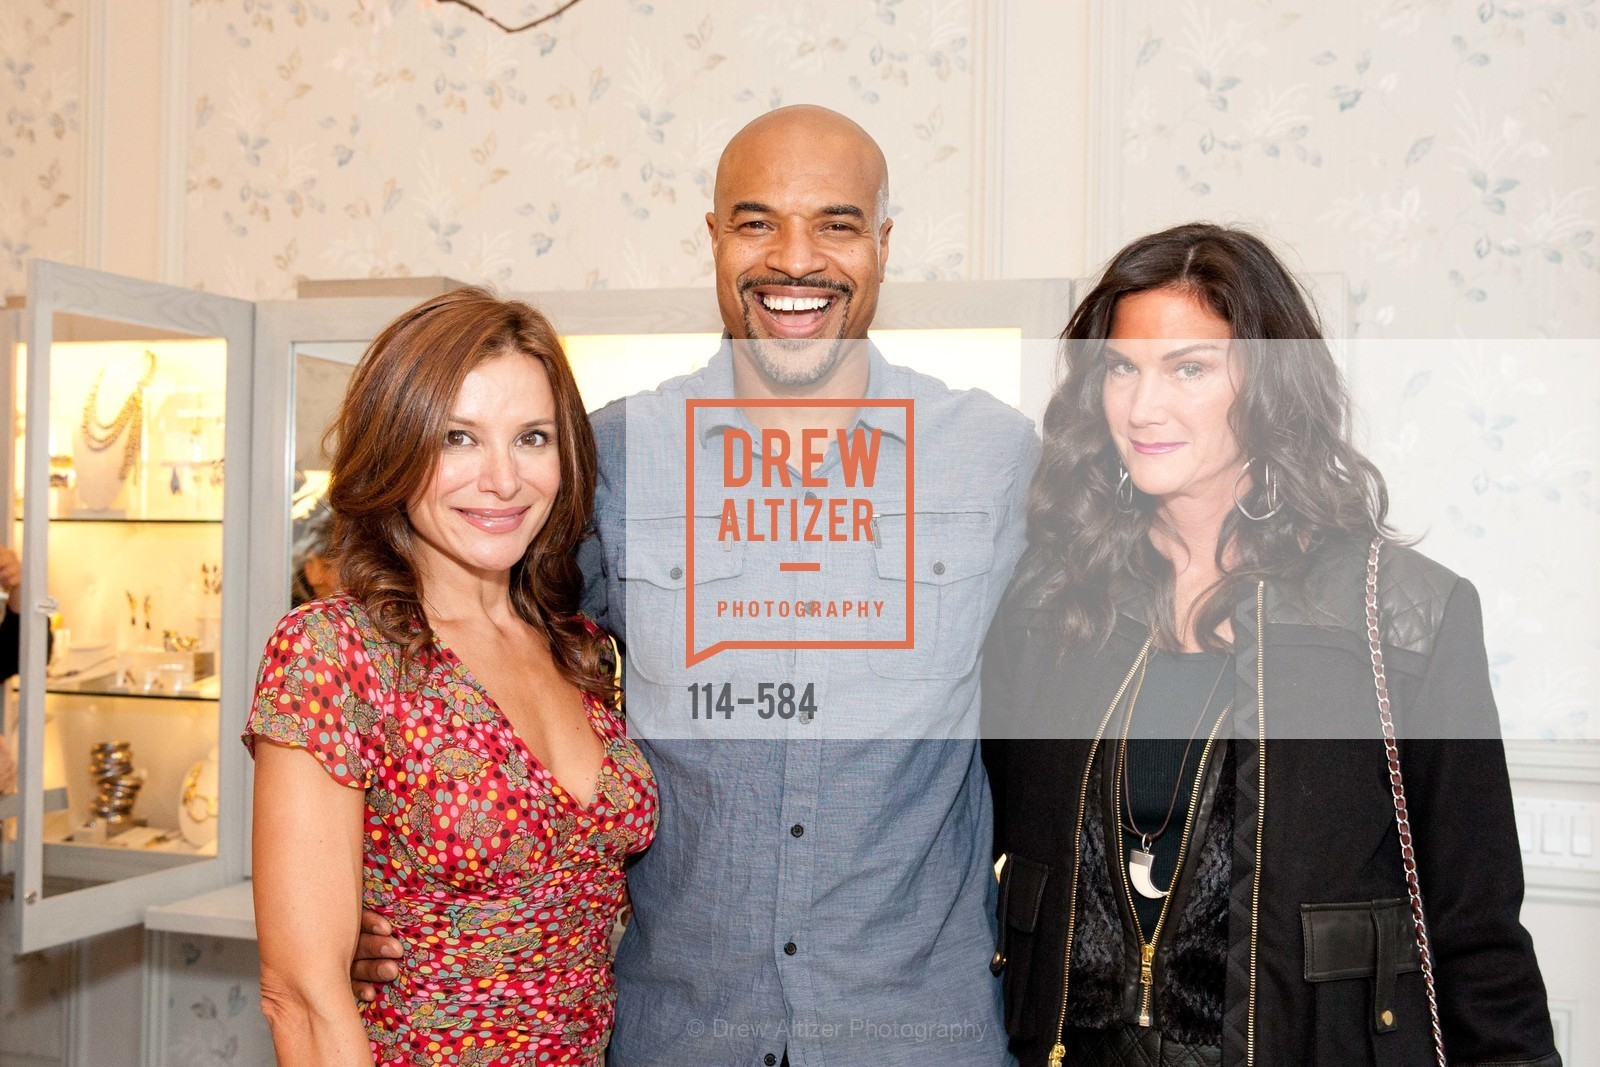 Claudia Ross, Pierce Charleston, Lisa Alexander, Alexis Bittar Event; Support of the San Francisco Fall Antique Show Benefitting Enterprise for High School Students Francisco Fall Antique Show, benefiting Enterprise for High School Students, US, October 2nd, 2014,Drew Altizer, Drew Altizer Photography, full-service agency, private events, San Francisco photographer, photographer california